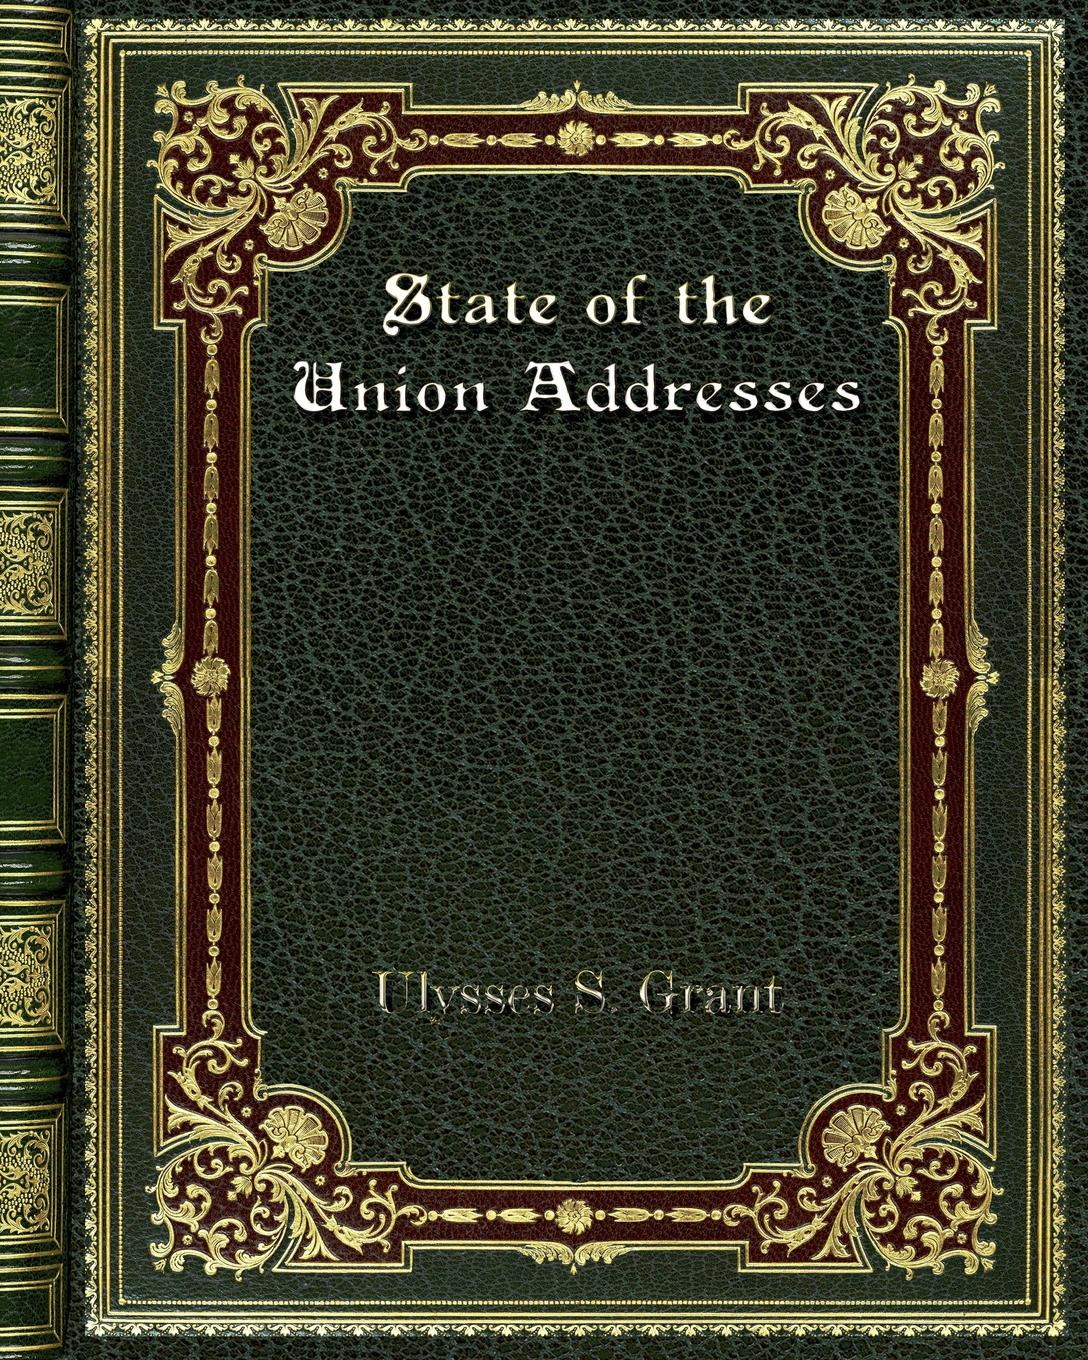 Ulysses S. Grant State of the Union Addresses